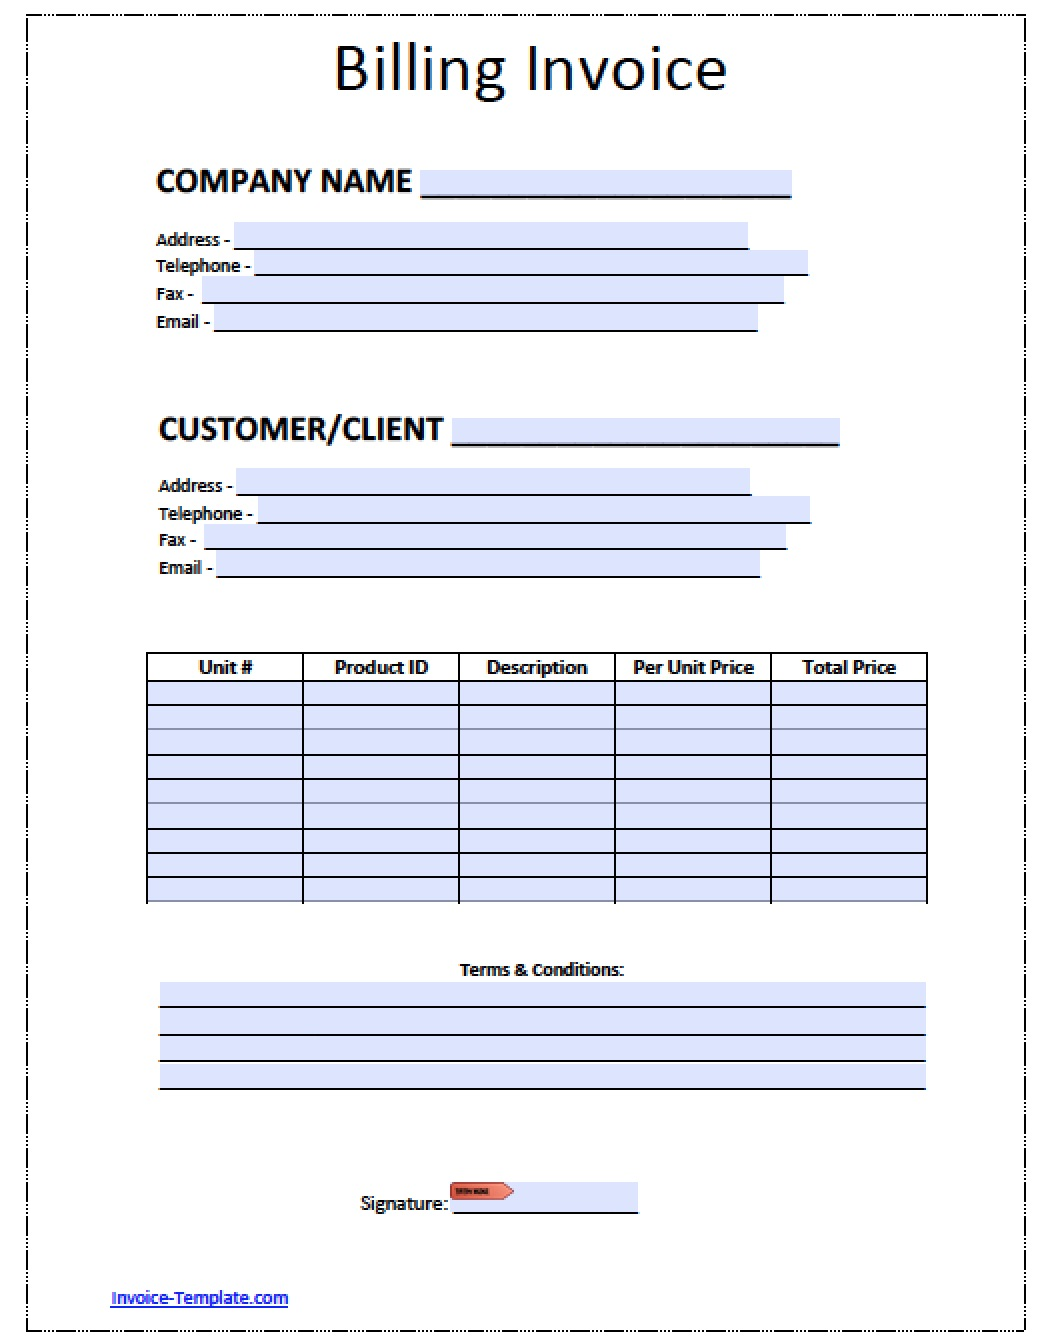 Free Blank Invoice Templates In PDF Word Excel - Free invoice template microsoft word best online clothing stores for men